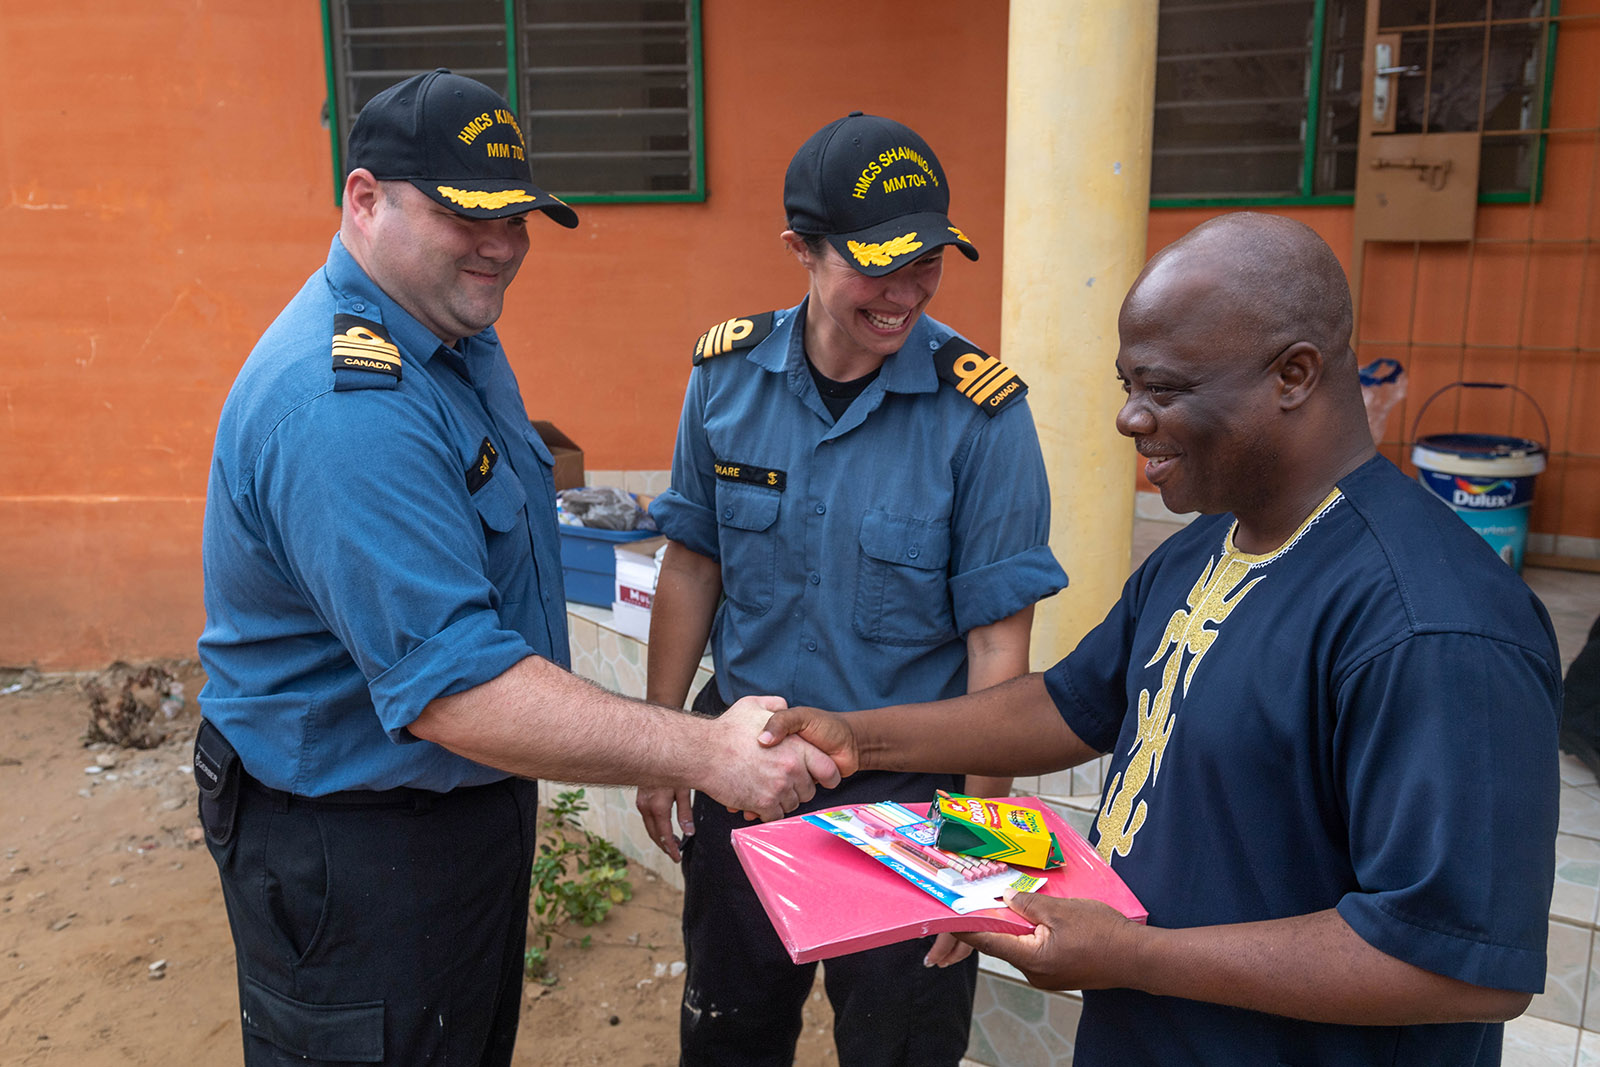 The Commanding Officers of HMCS Shawinigan and Kingston present donated school supplies to the director of L'Espace de Fraternité in Lomé, Togo on March 6, 2019.